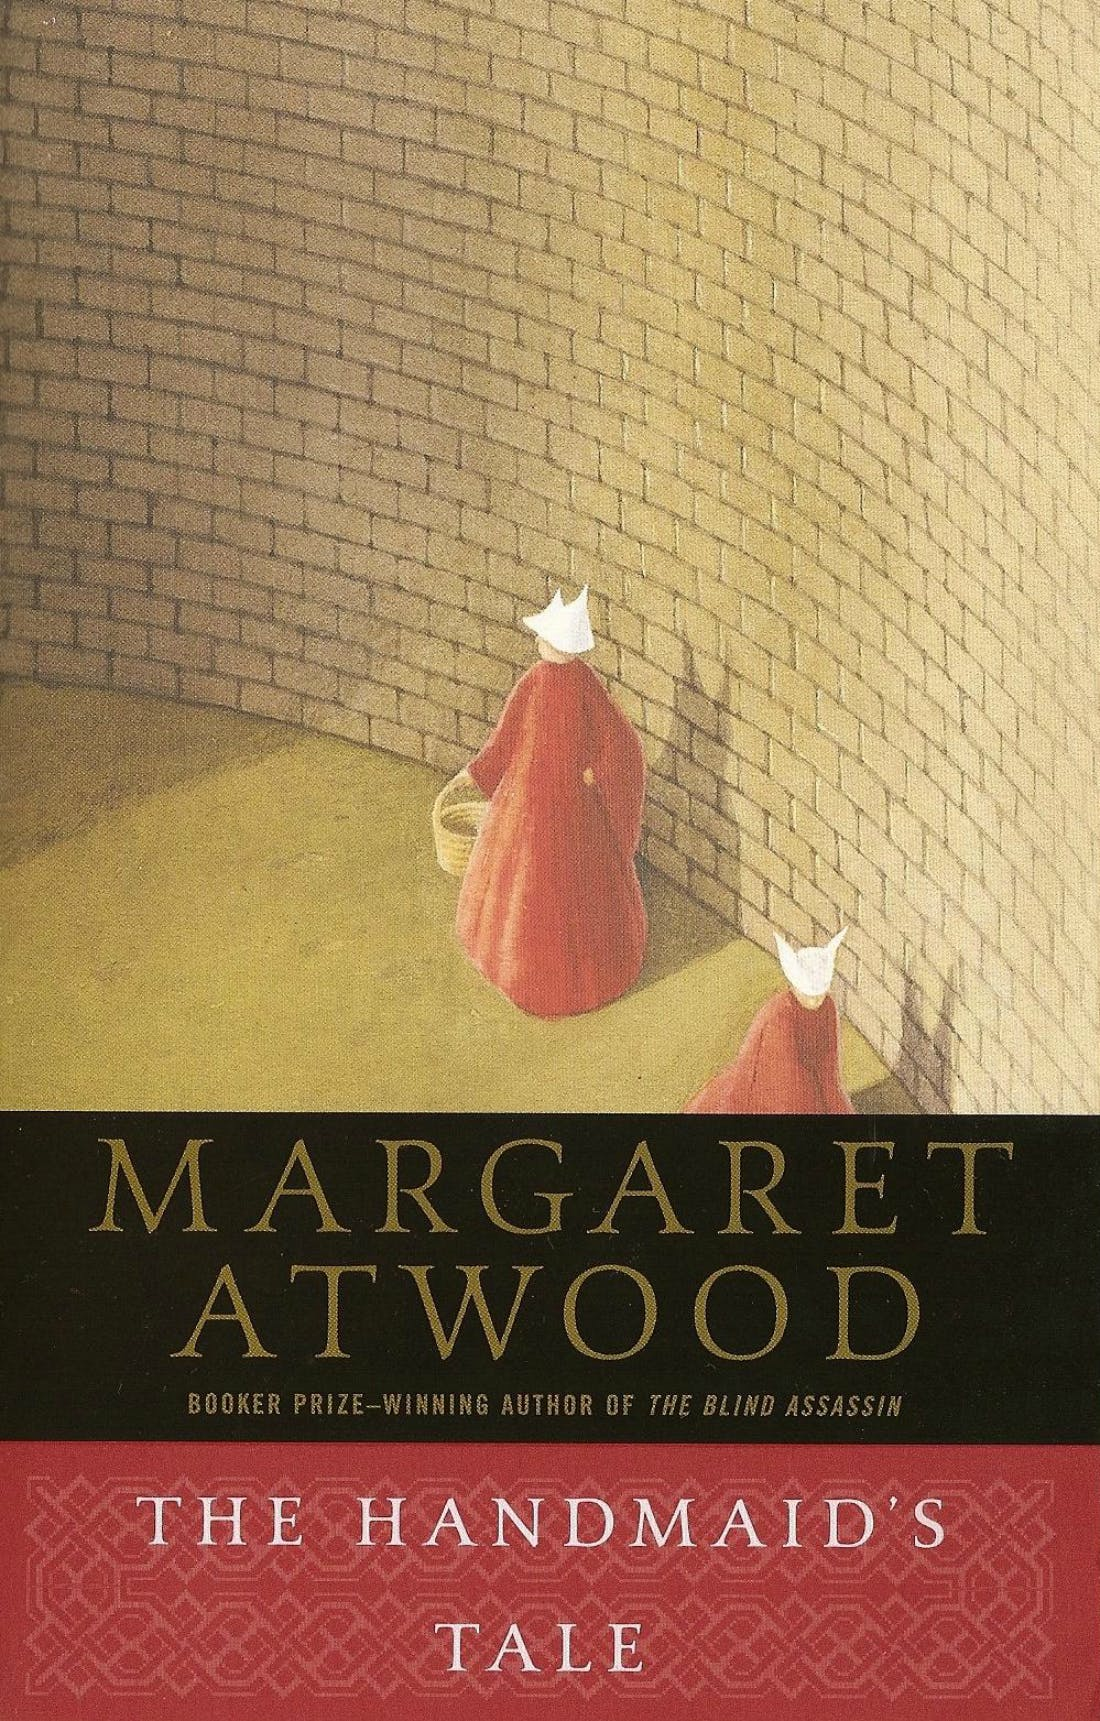 5 Books to Read that Inspired Great Television Series | 2) The Handmaid's Tale (the book)